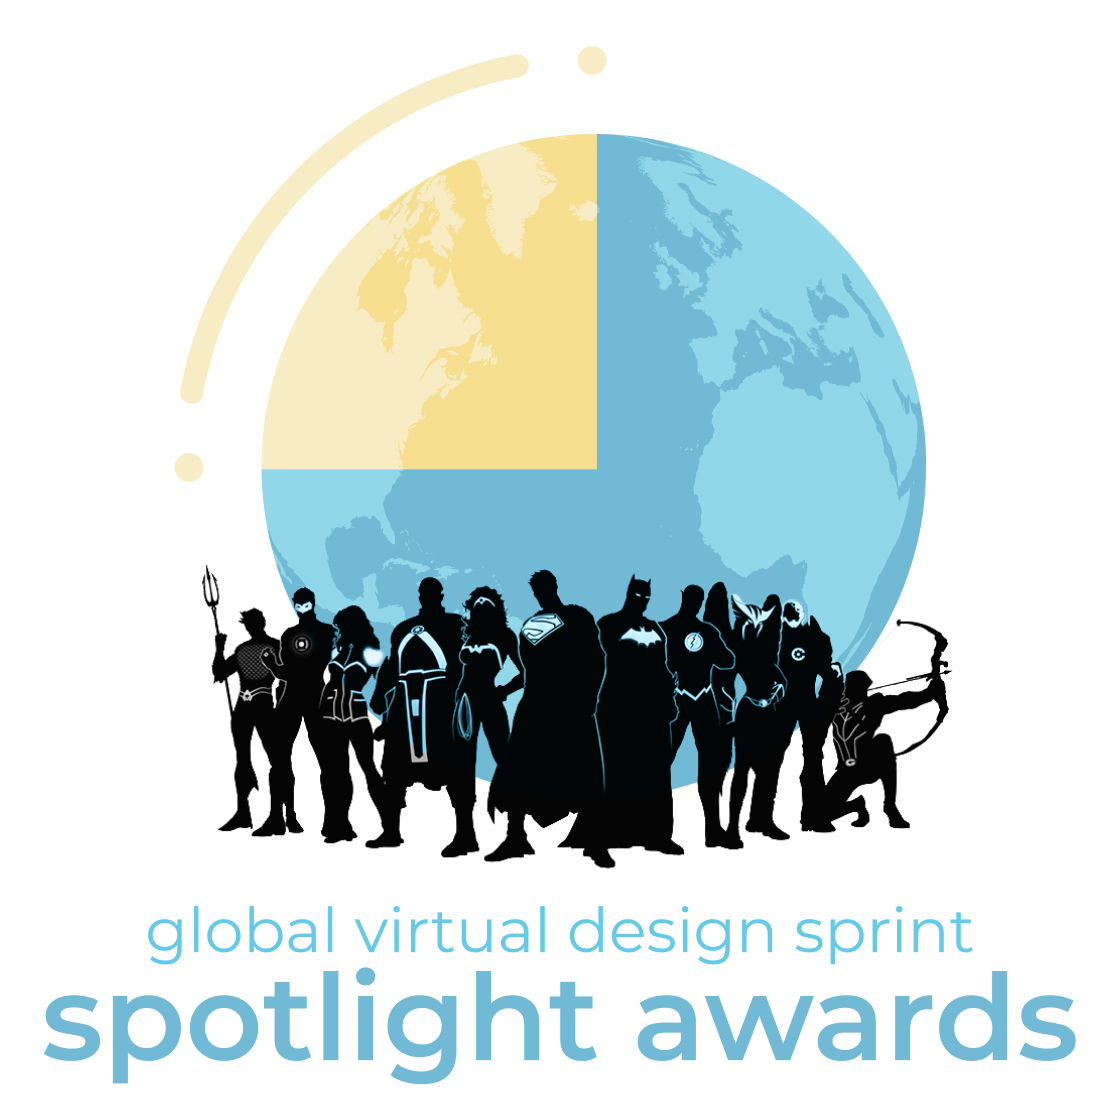 A Spotlight Award logo with some silhouetted super heroes in front of it.